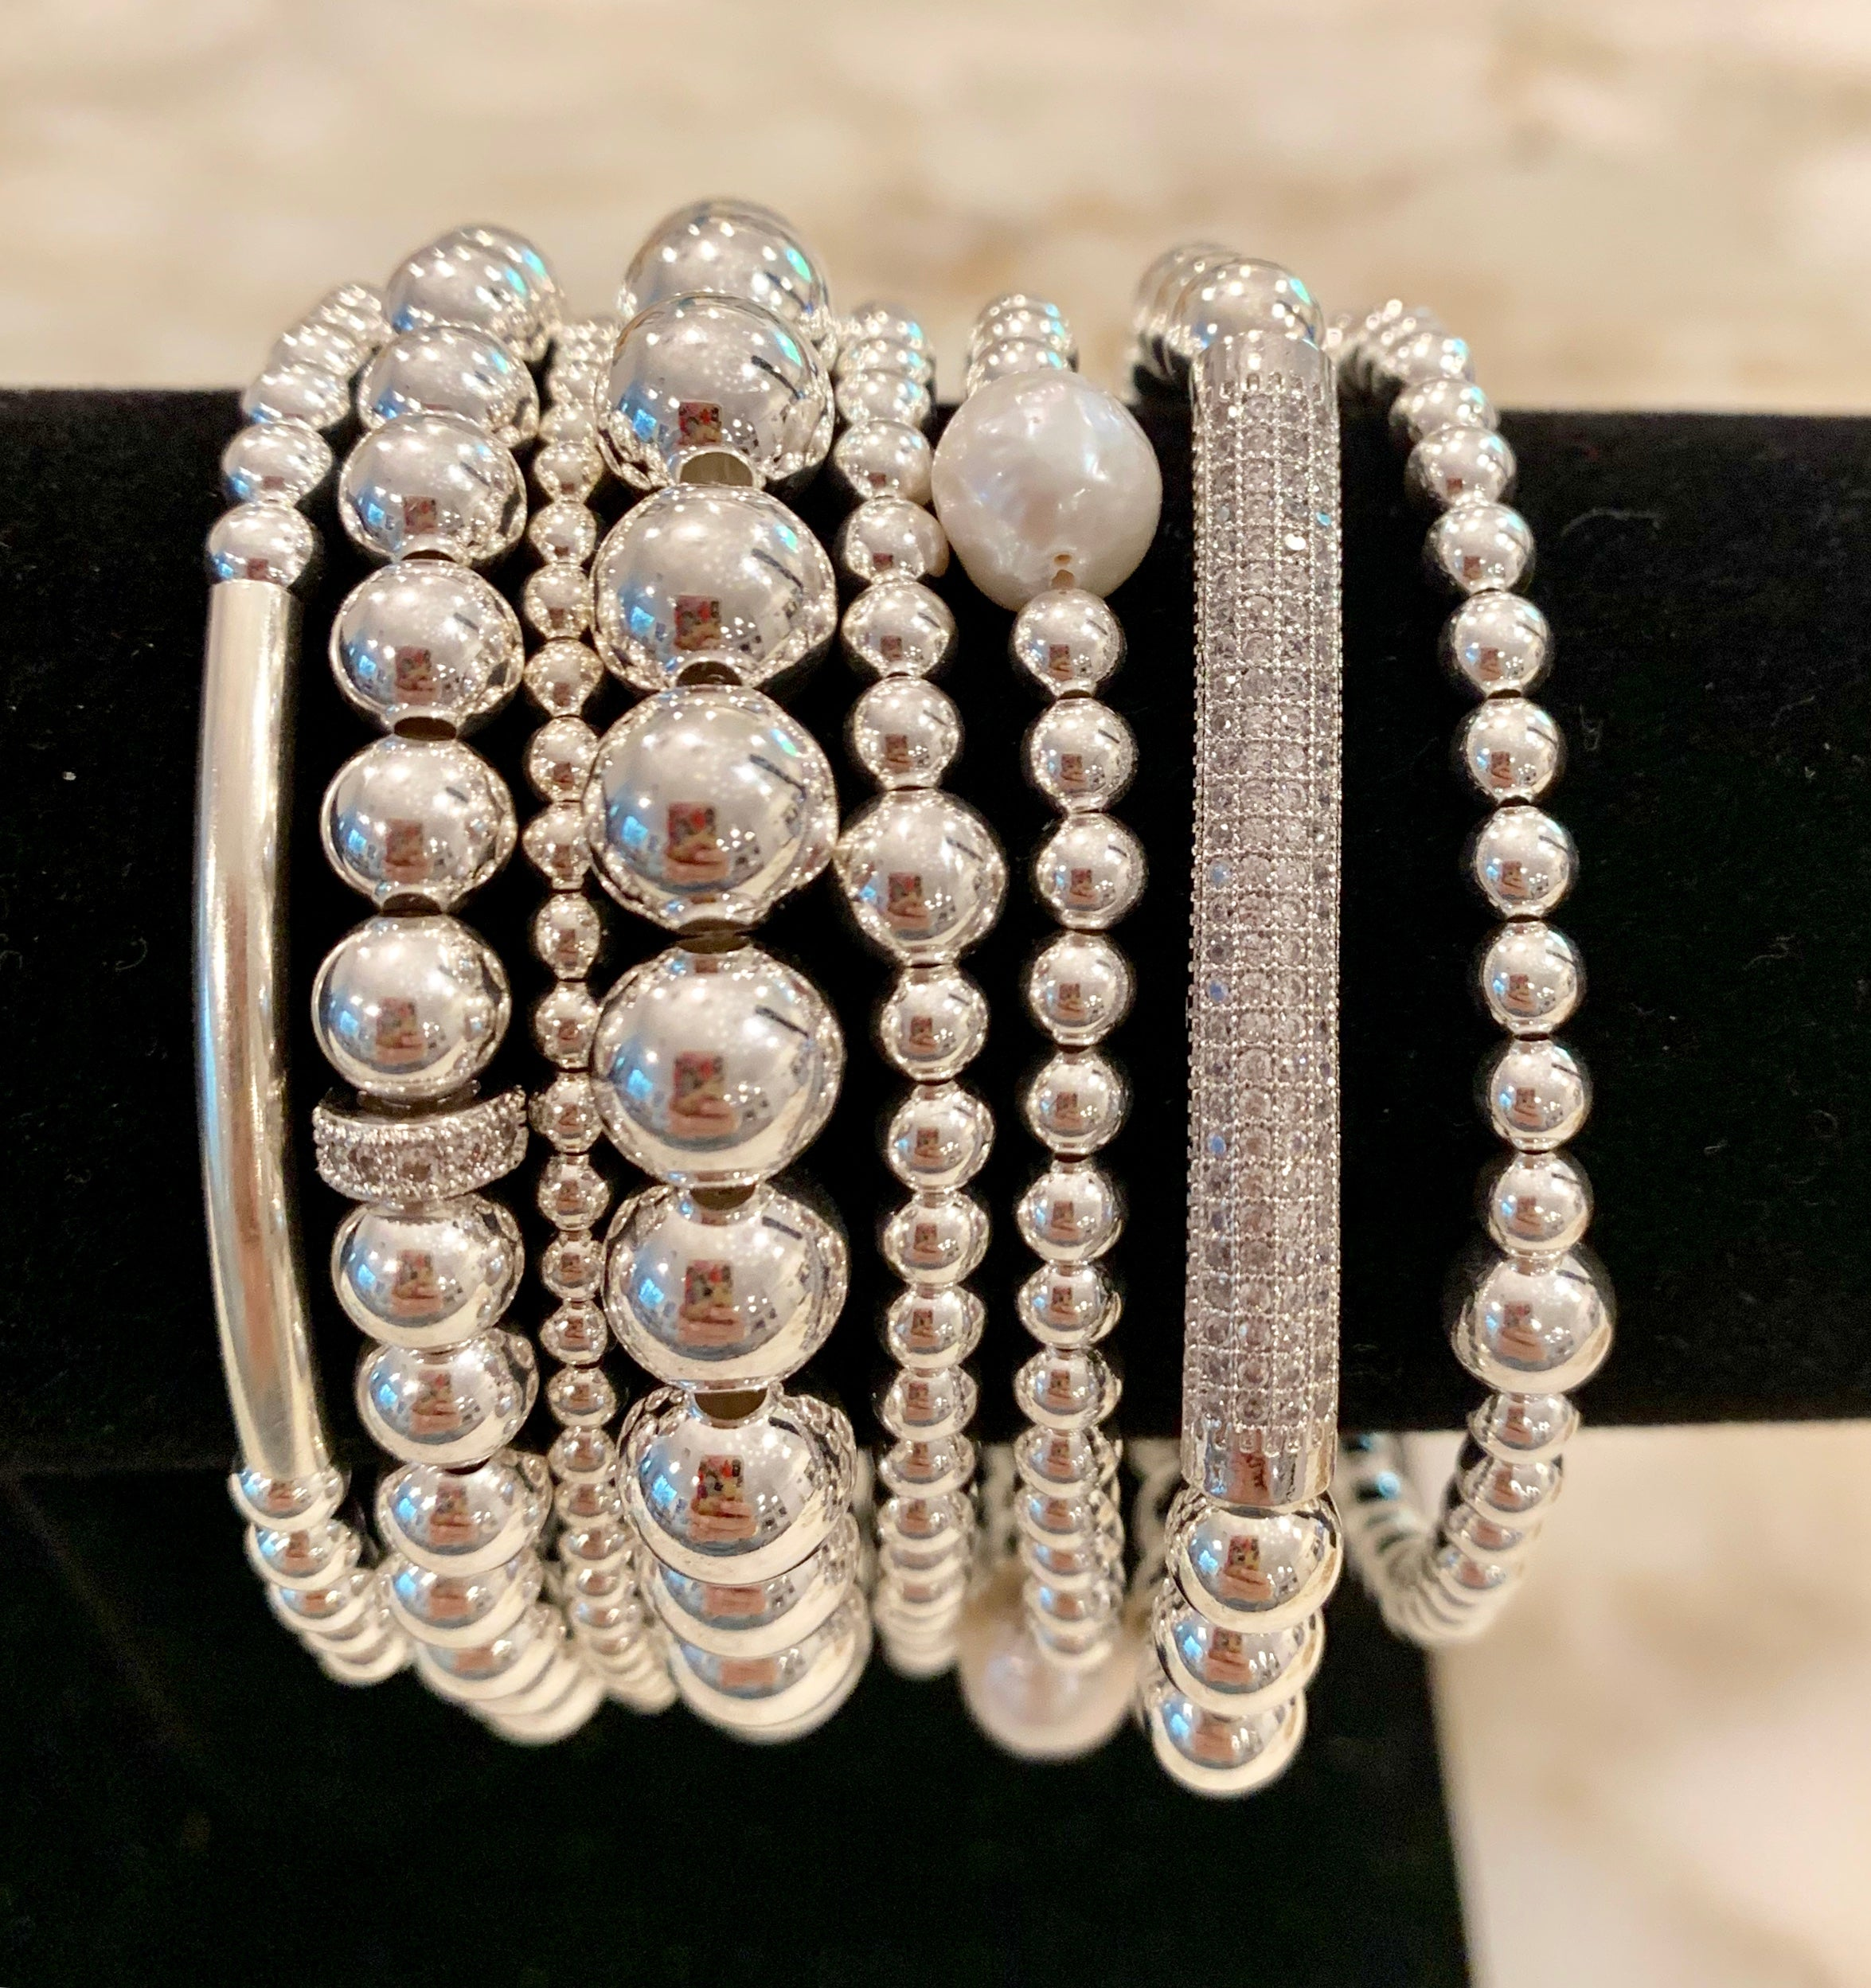 KERRIN 8 Piece Sterling Silver Bead Bracelet Stack with CZ Spacer, Fresh Water Pearls and CZ Bling Bar